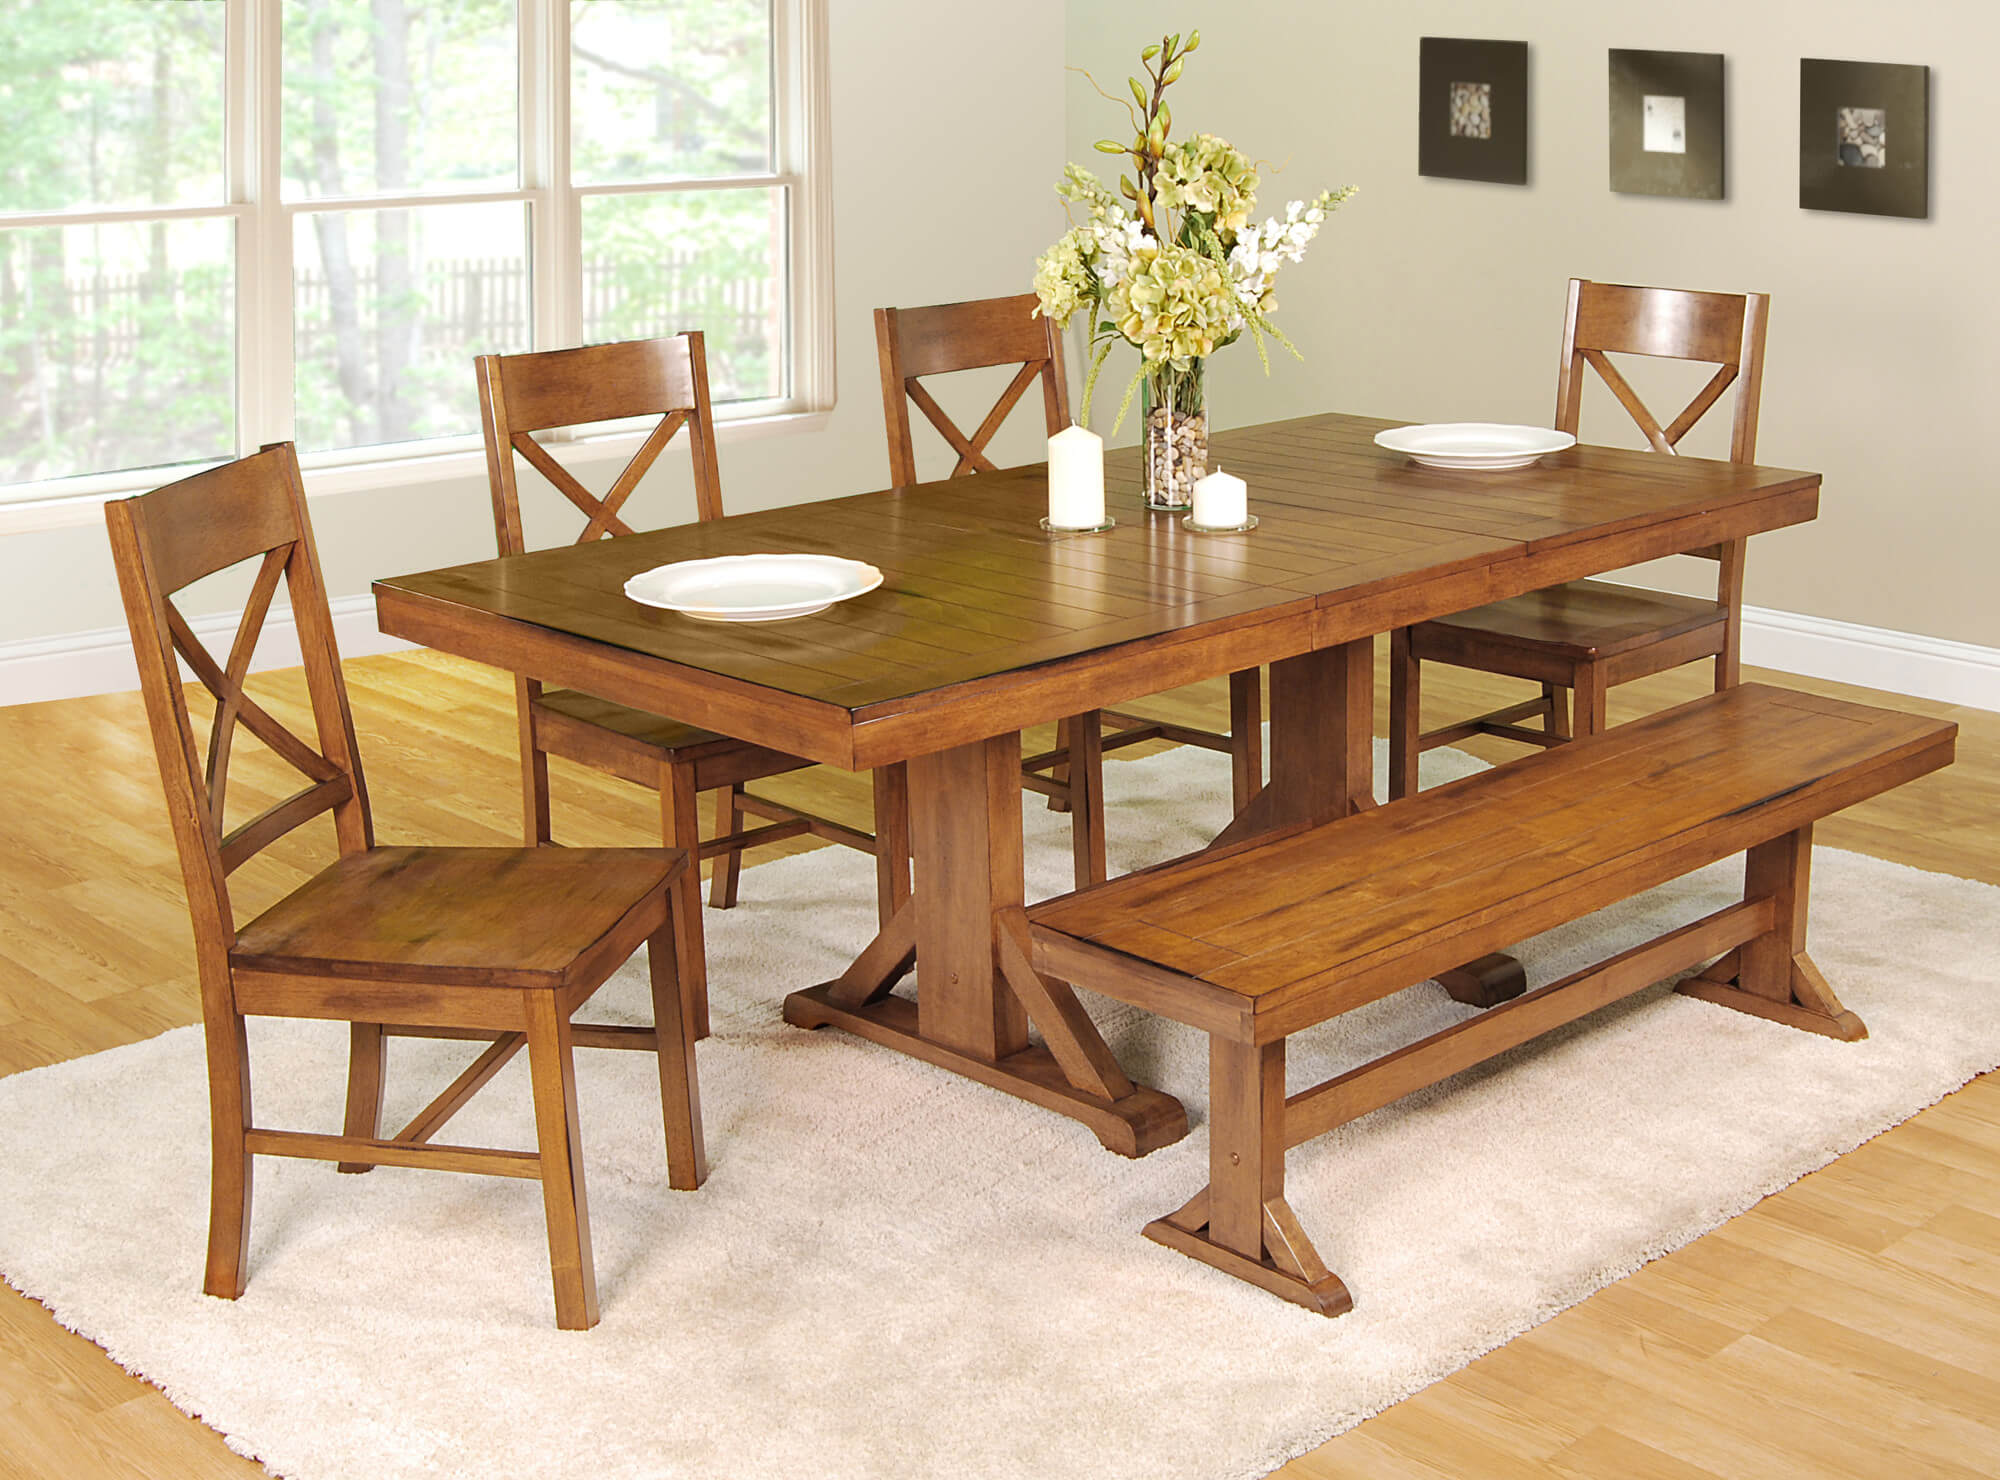 small dining chairs office chair arms 26 room sets big and with bench seating 2019 this set is going for the antique look an brown